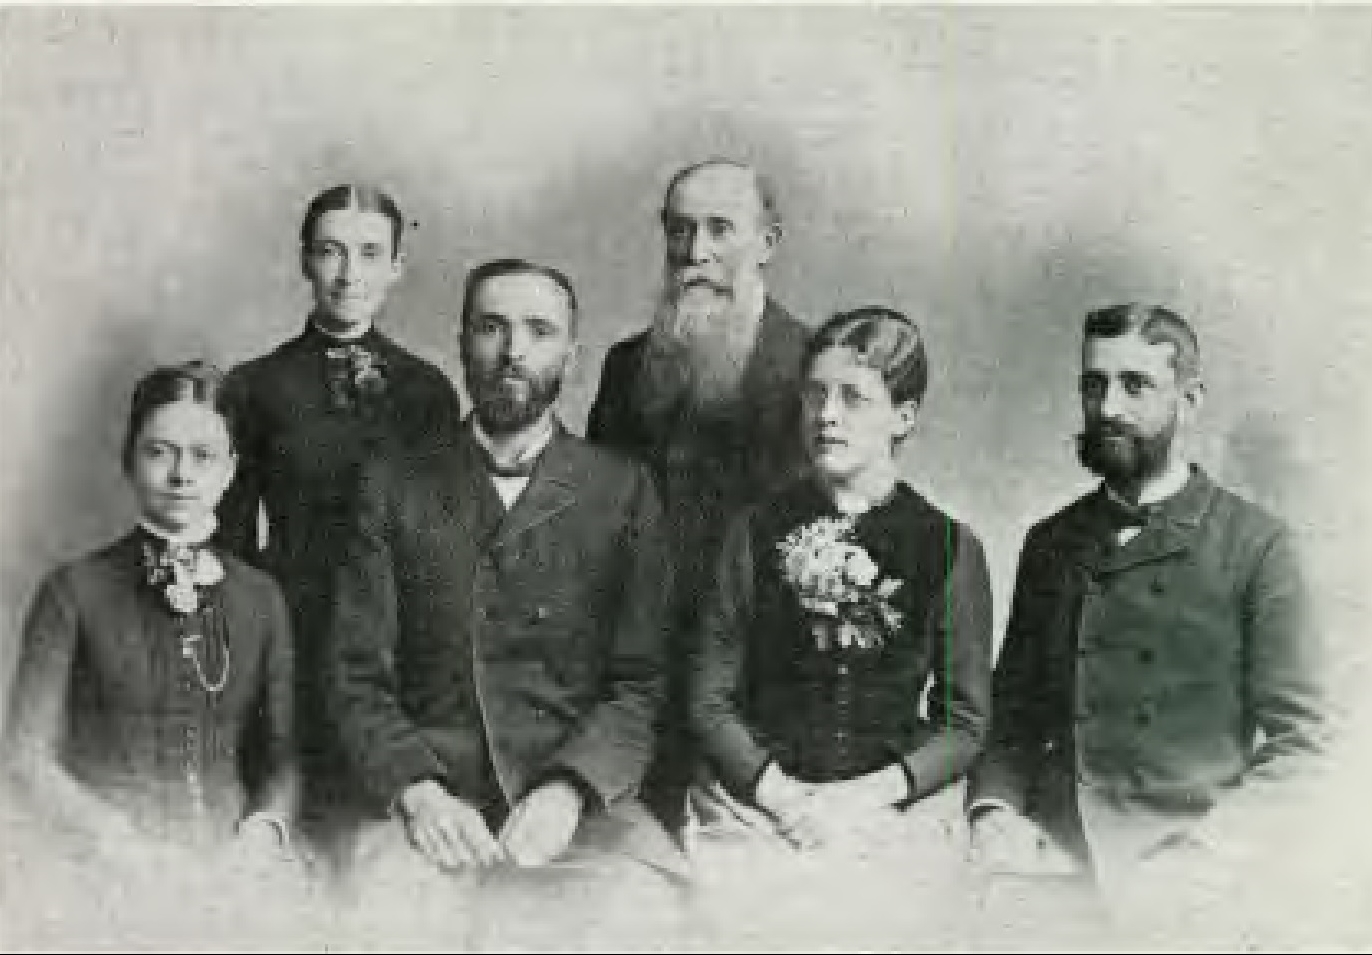 Missionaries on the first voyage of the Pitcairn (1890). Elder and Mrs. E. H. Gates (left), Elder and Mrs. A. J. Read (right), and Mr. and Mrs. J. I. Tay (standing).